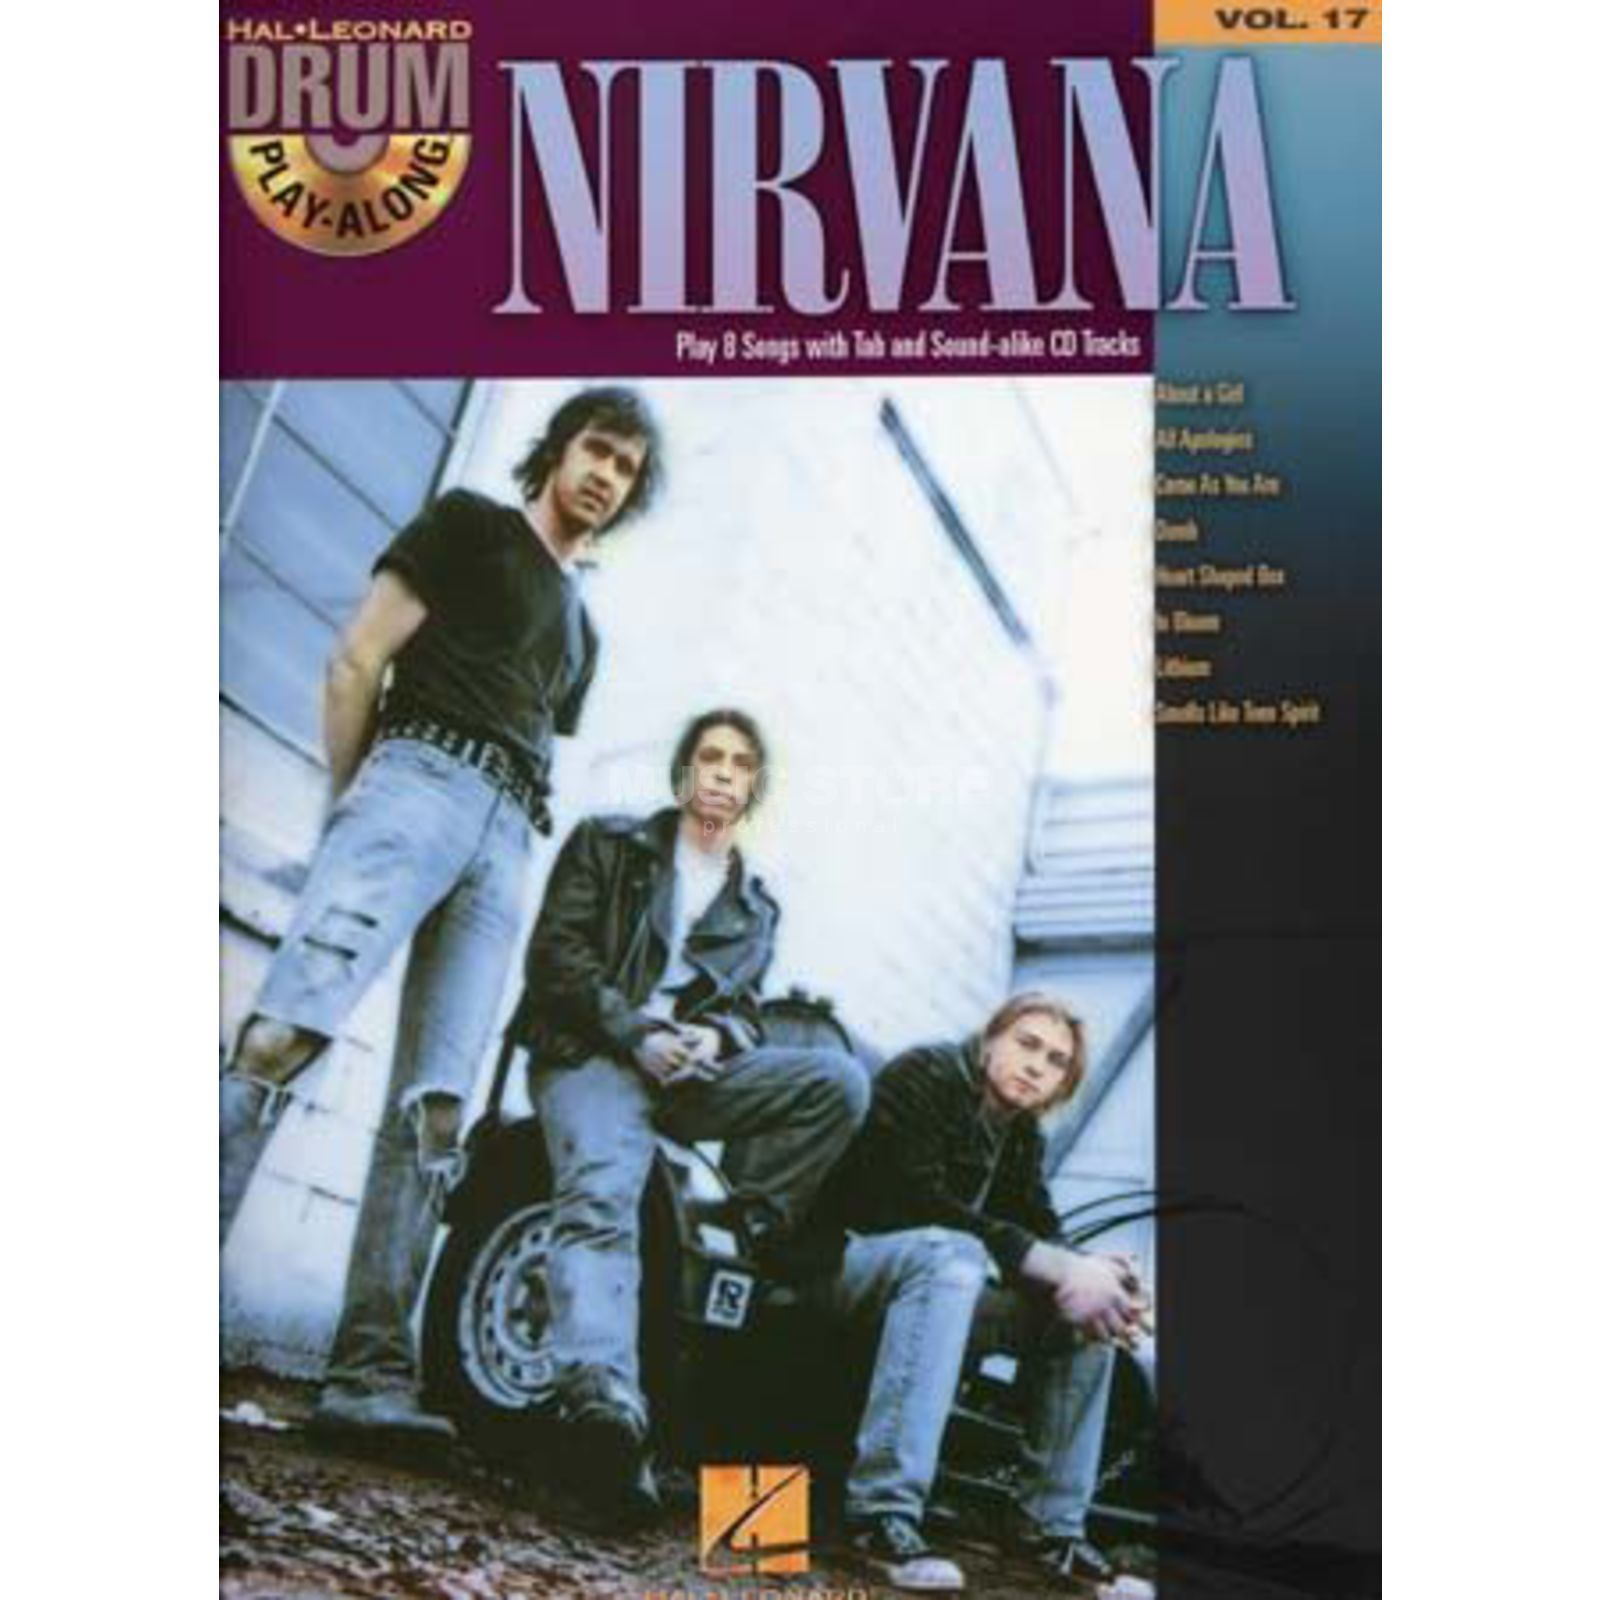 Hal Leonard Drum Play-Along: Nirvana Vol. 17 Produktbild